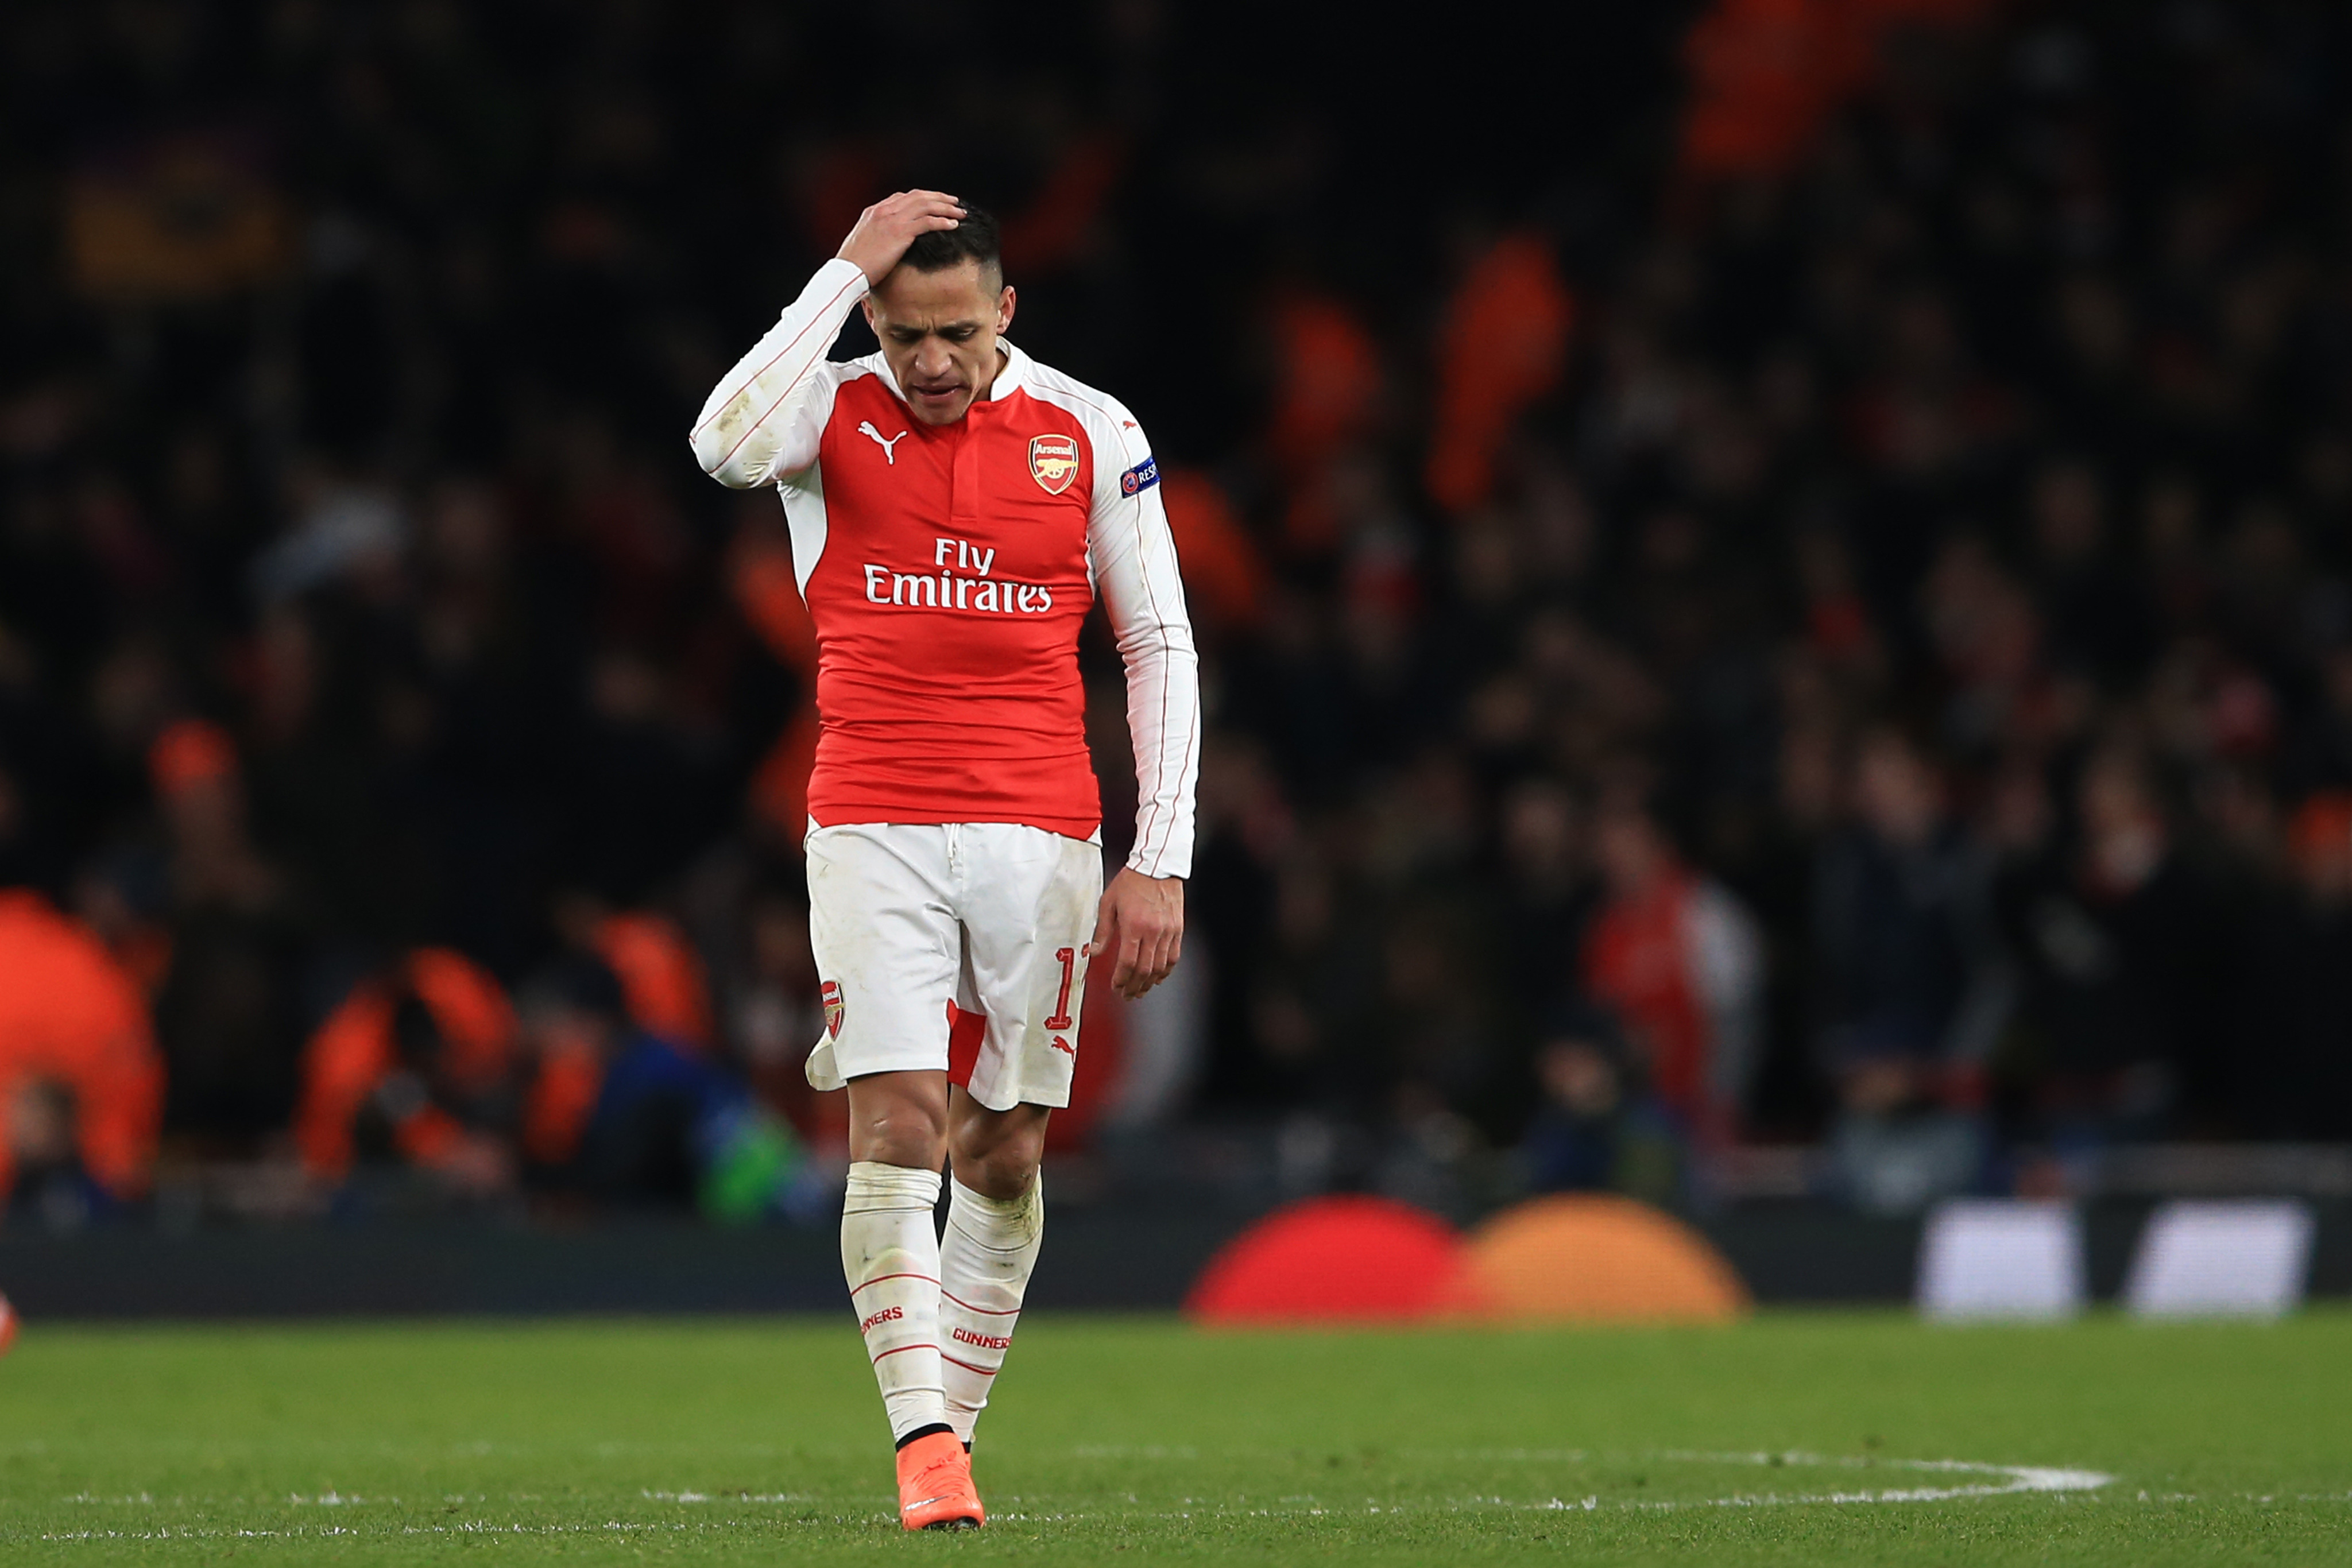 Mesut Ozil and Alexis Sanchez want Arsenal exits: Chilean has preferred destination